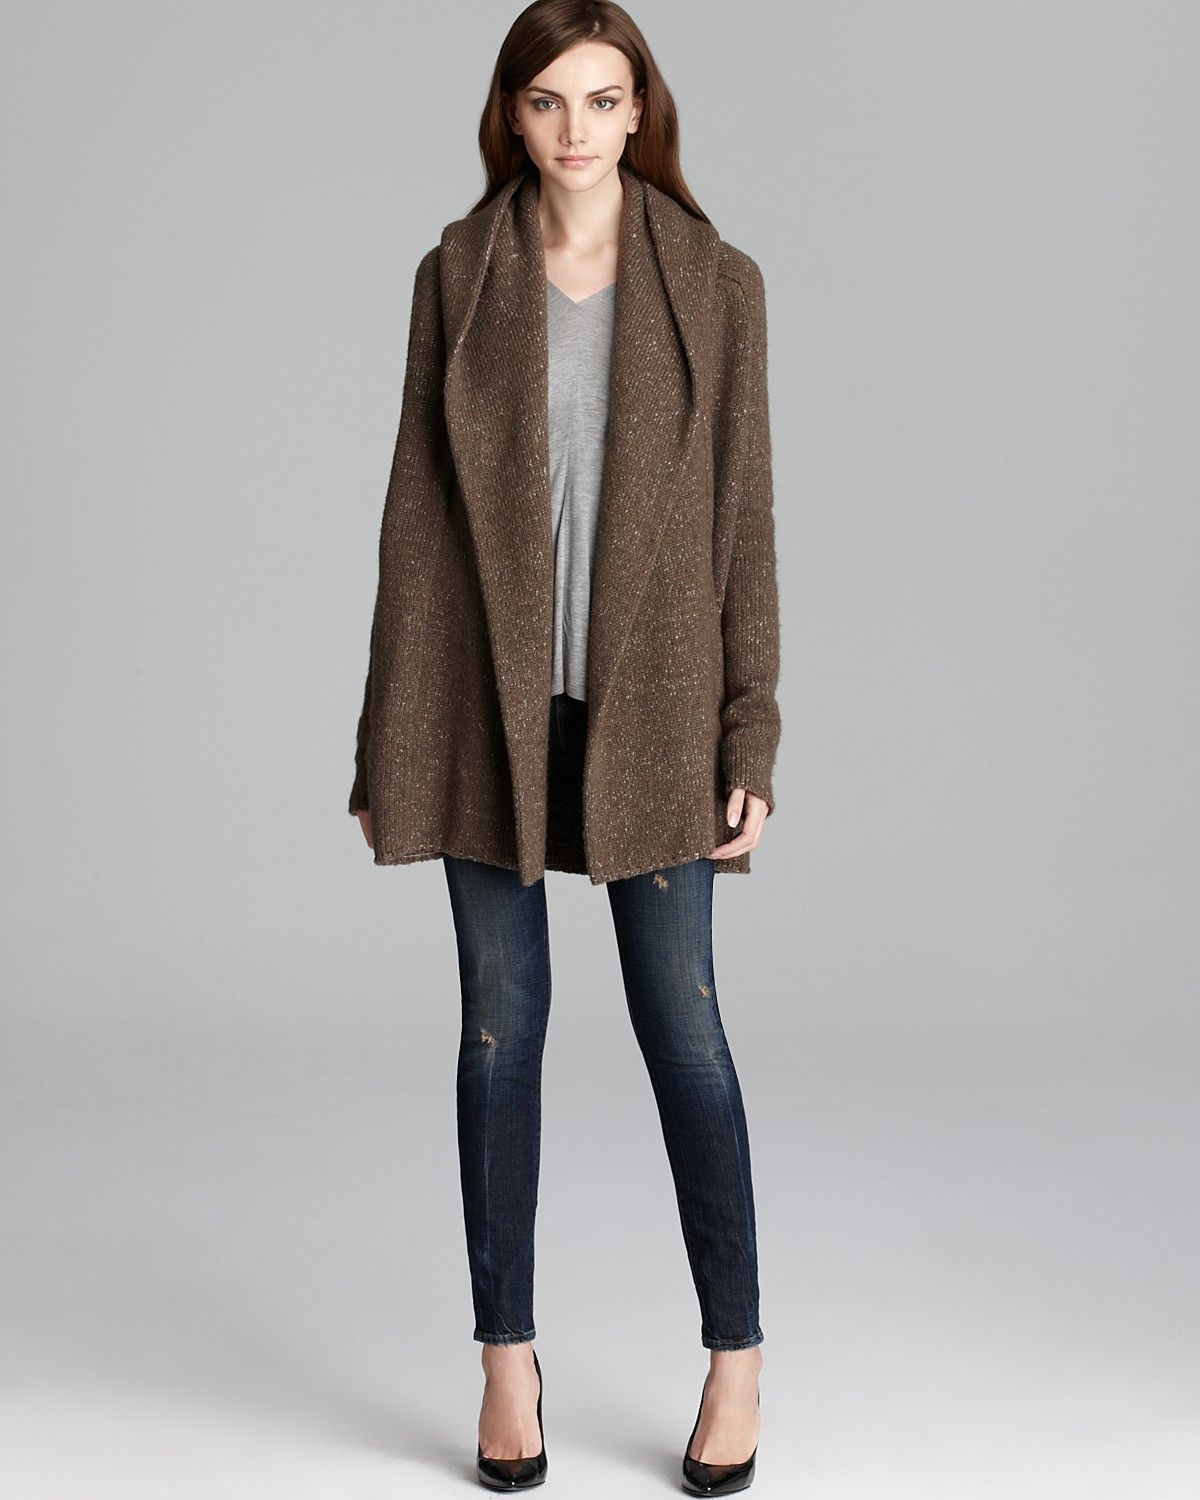 1000  images about Sweater Jackets and Sweater Coats on Pinterest